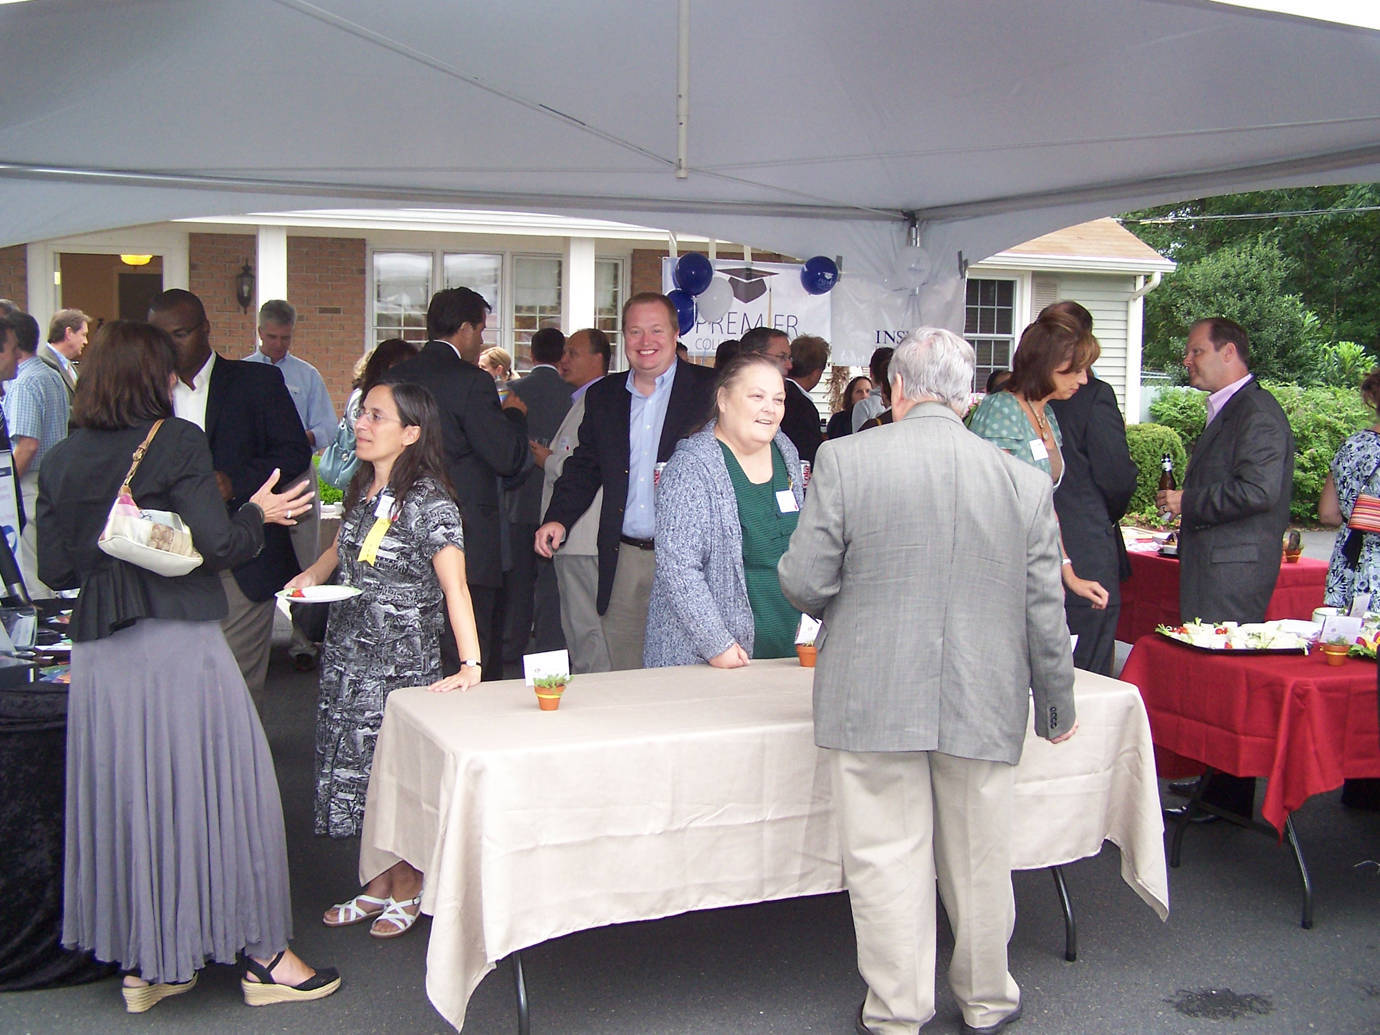 041be1d3ab89b2aa5b4a_Networking-Crowd.jpg